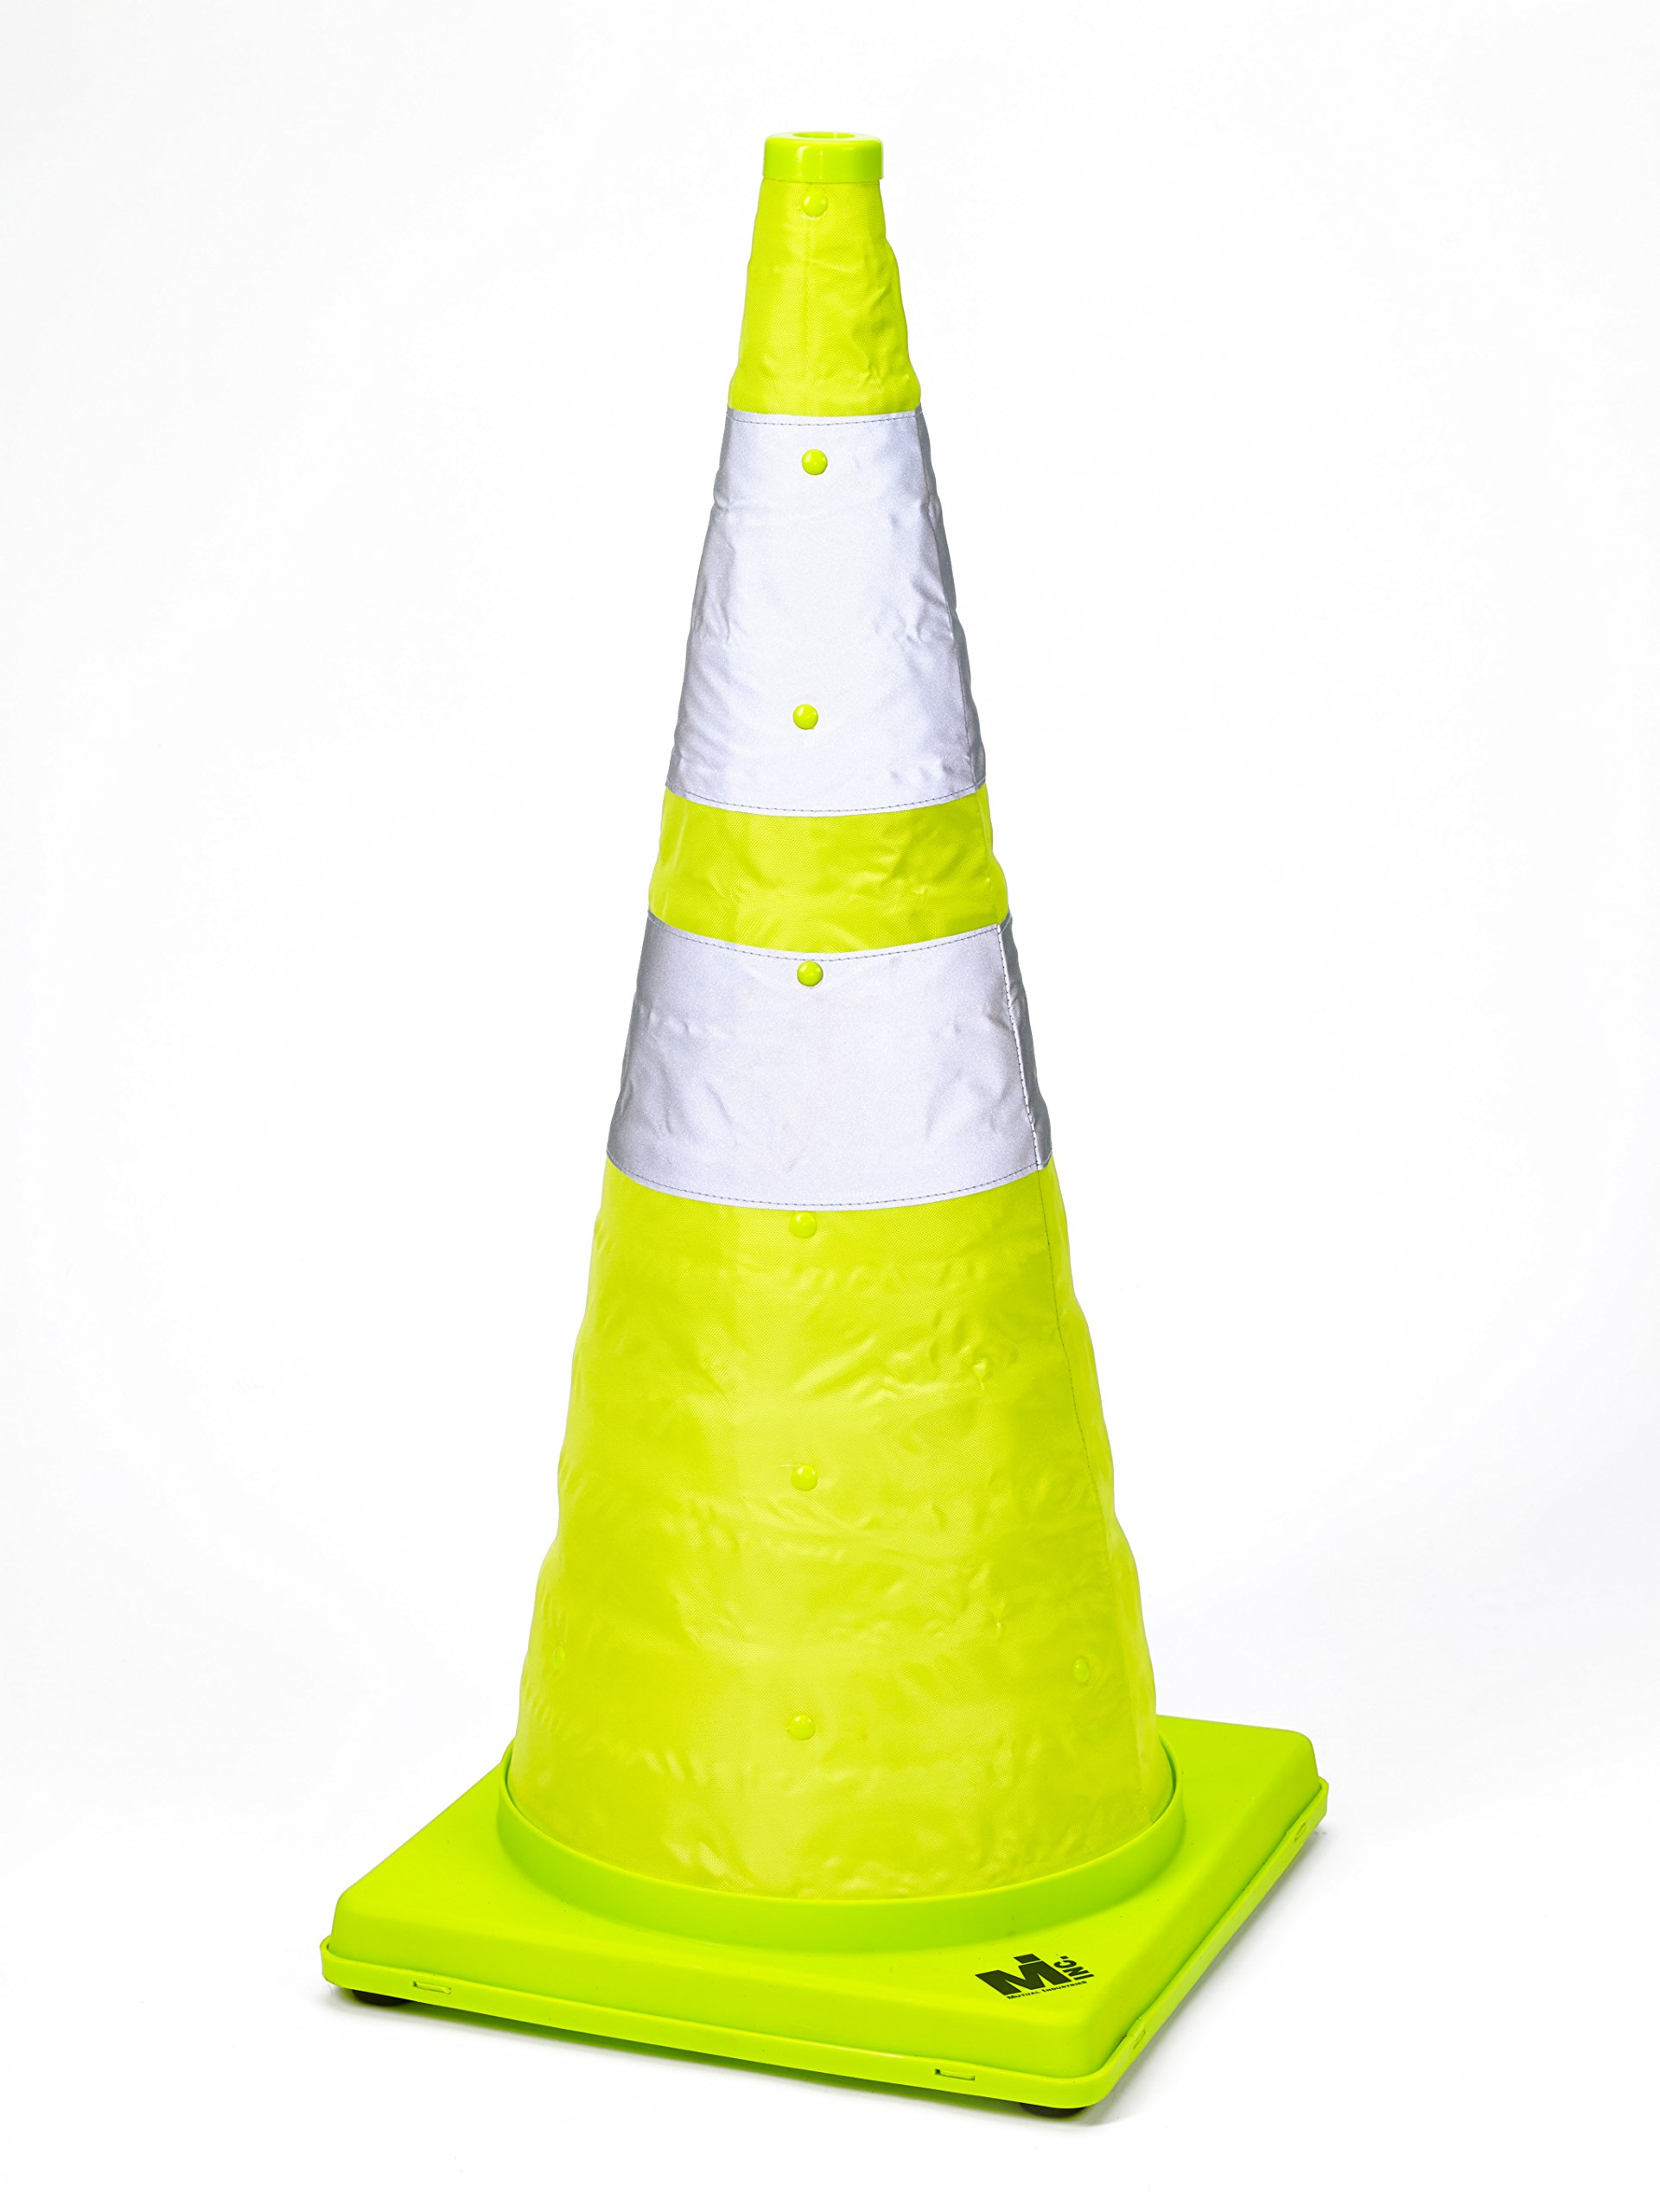 Mutual Industries 17712-1-28 Collapsible Reflective Traffic Cone with Inside Light, 28'' x 12'' x 12'', Lime